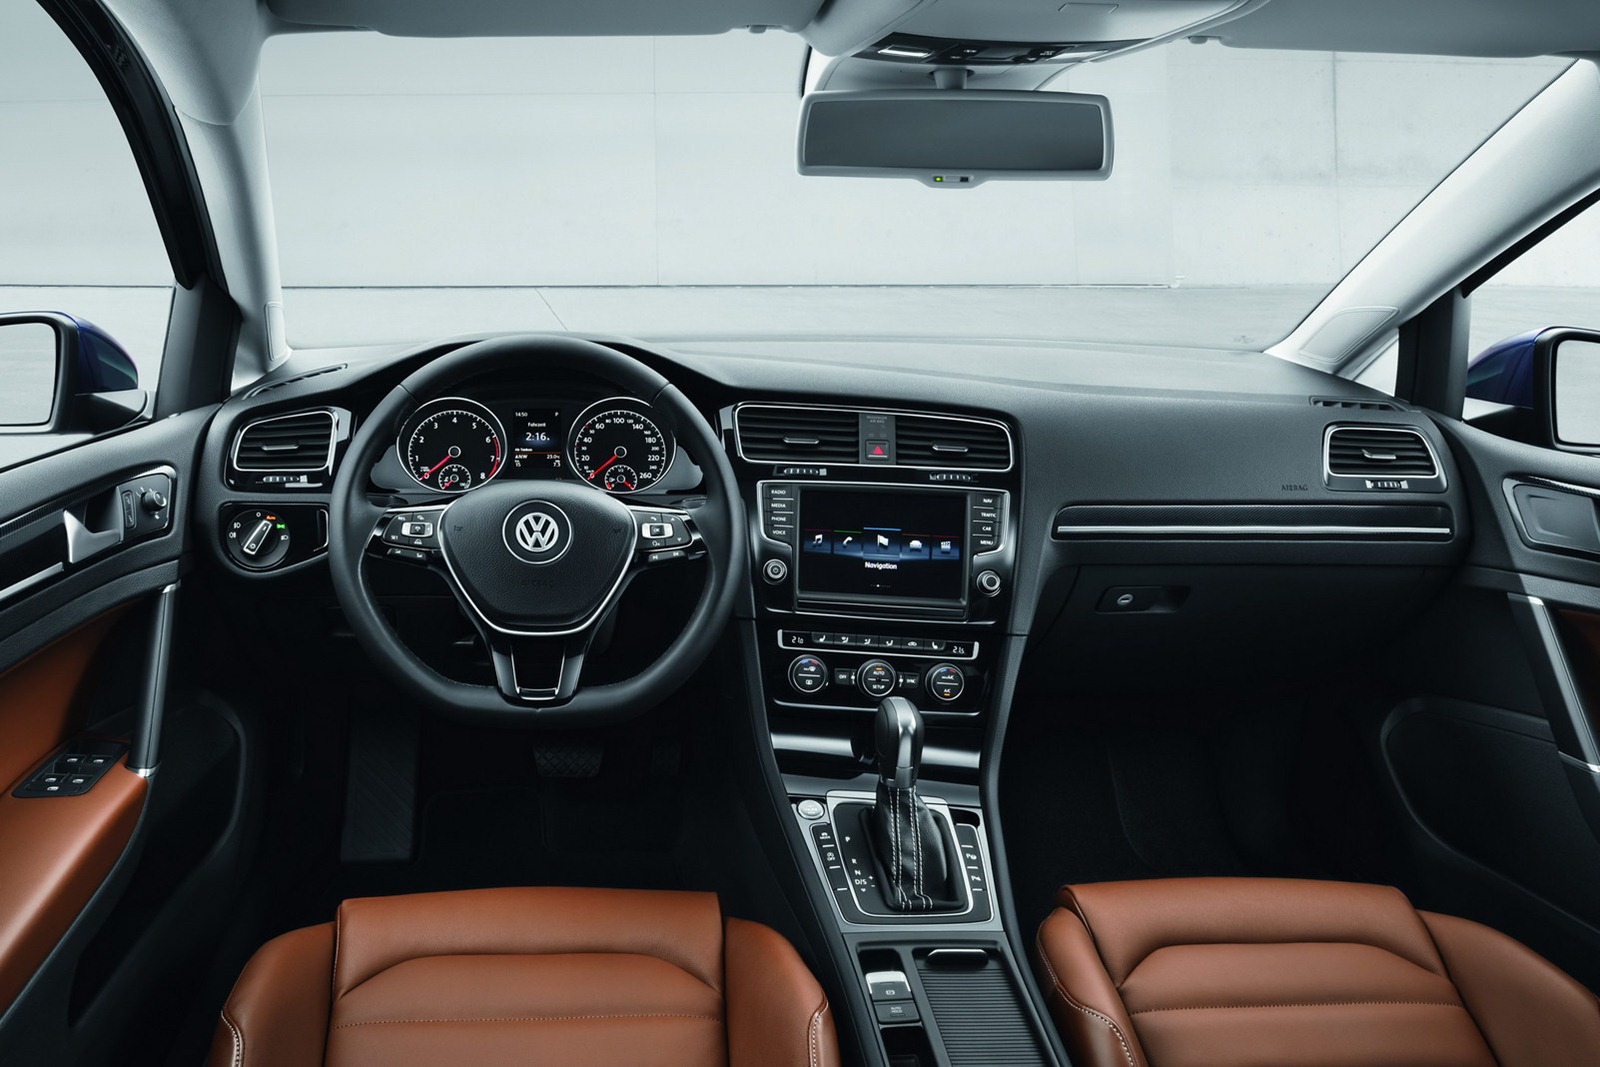 Vw Golf Interieur Car Design Scoop - Scoop Et Dernieres Infos Automobile